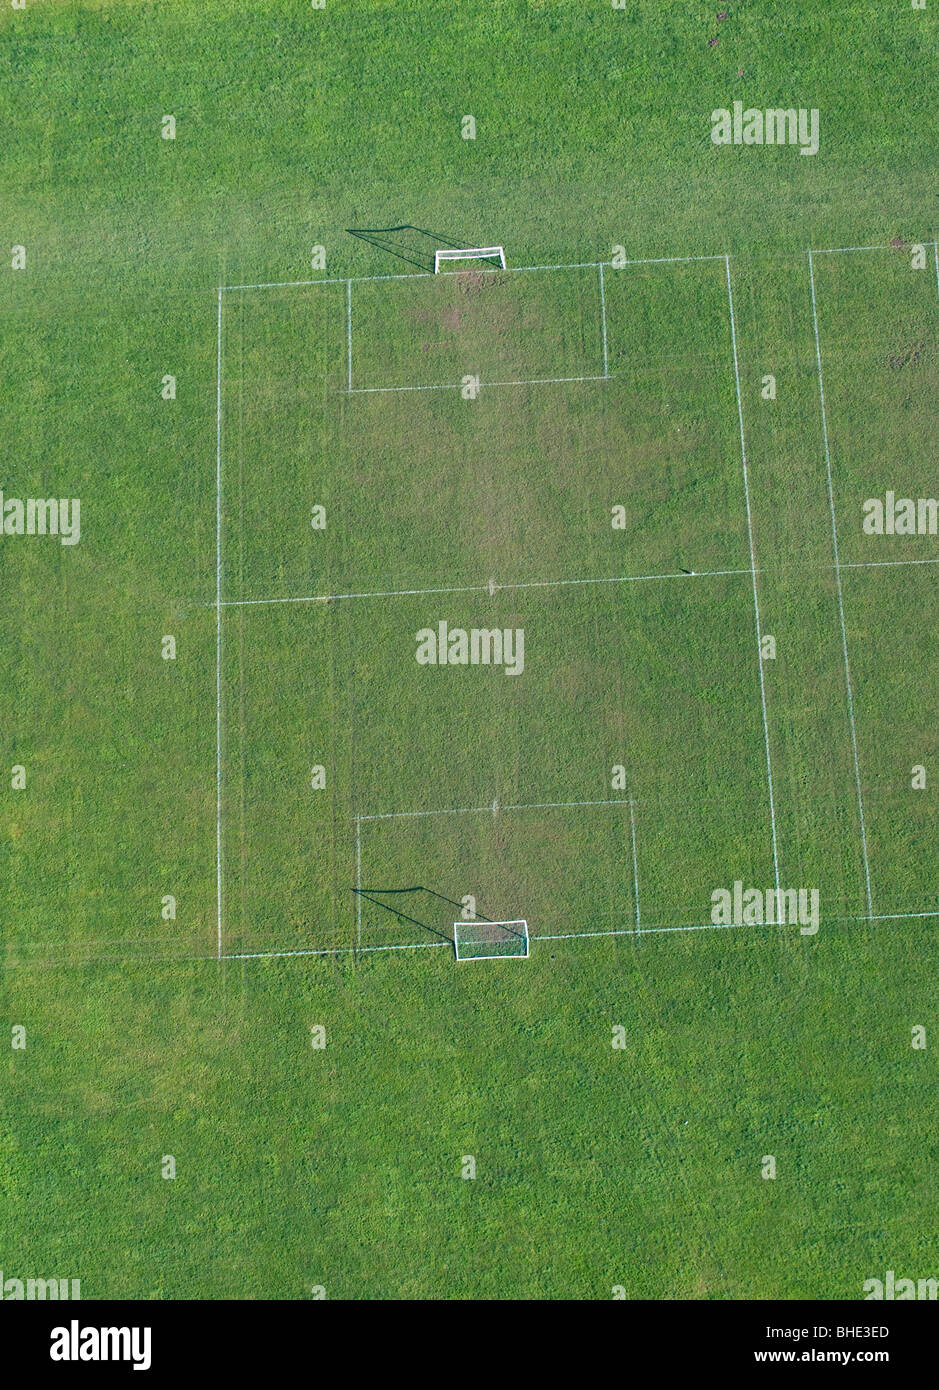 Football pitch from the air. - Stock Image